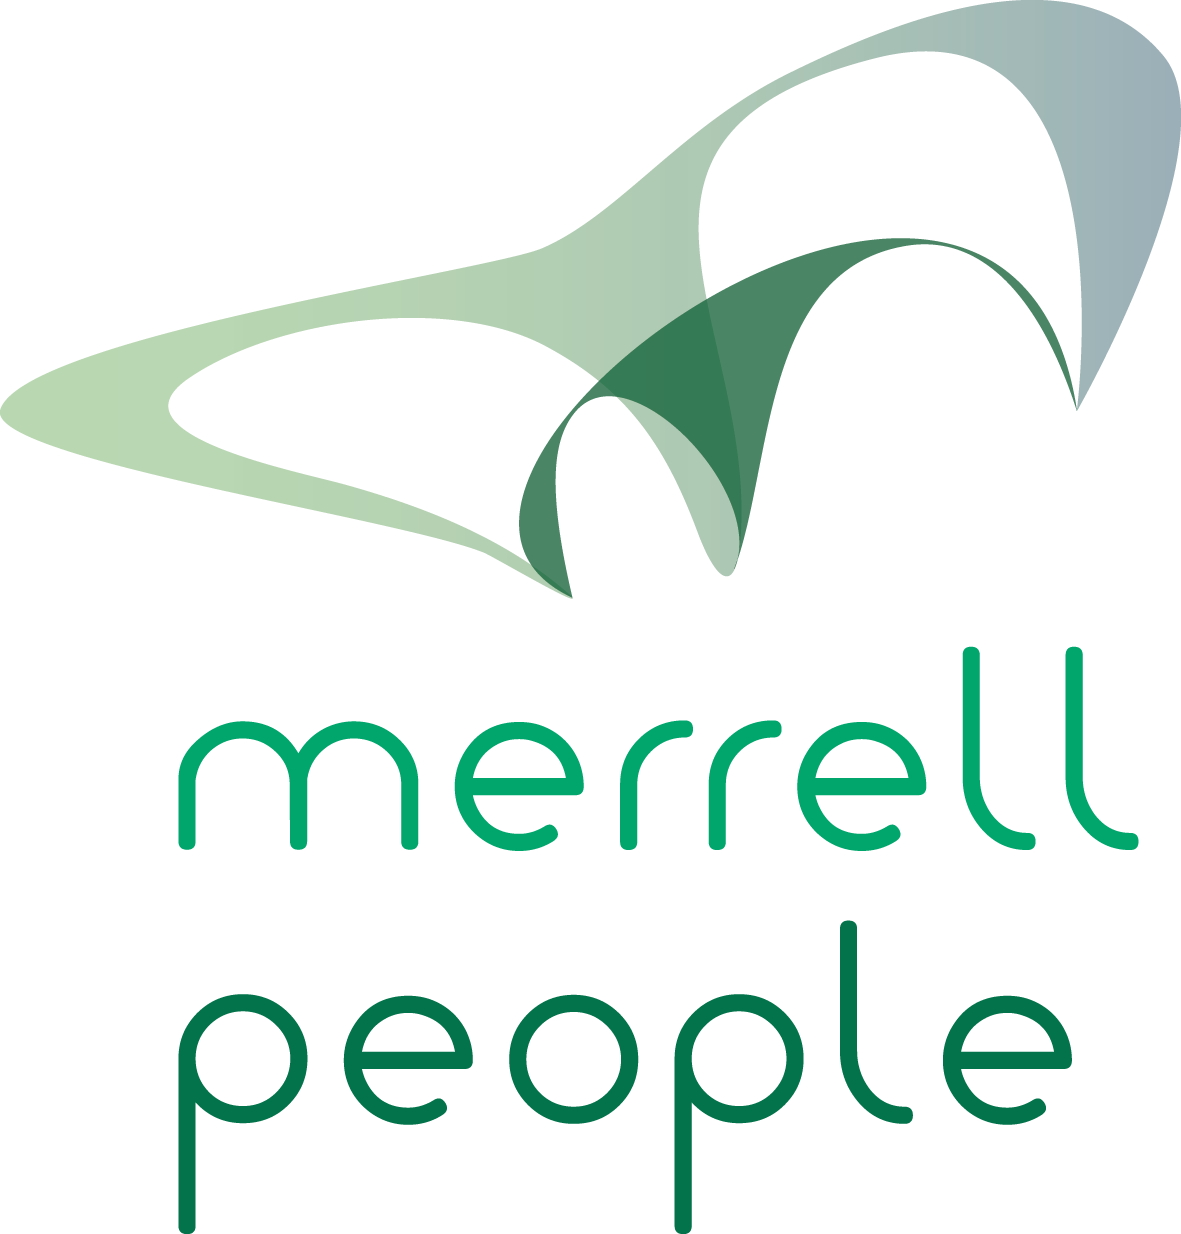 merrell-people-logo-square